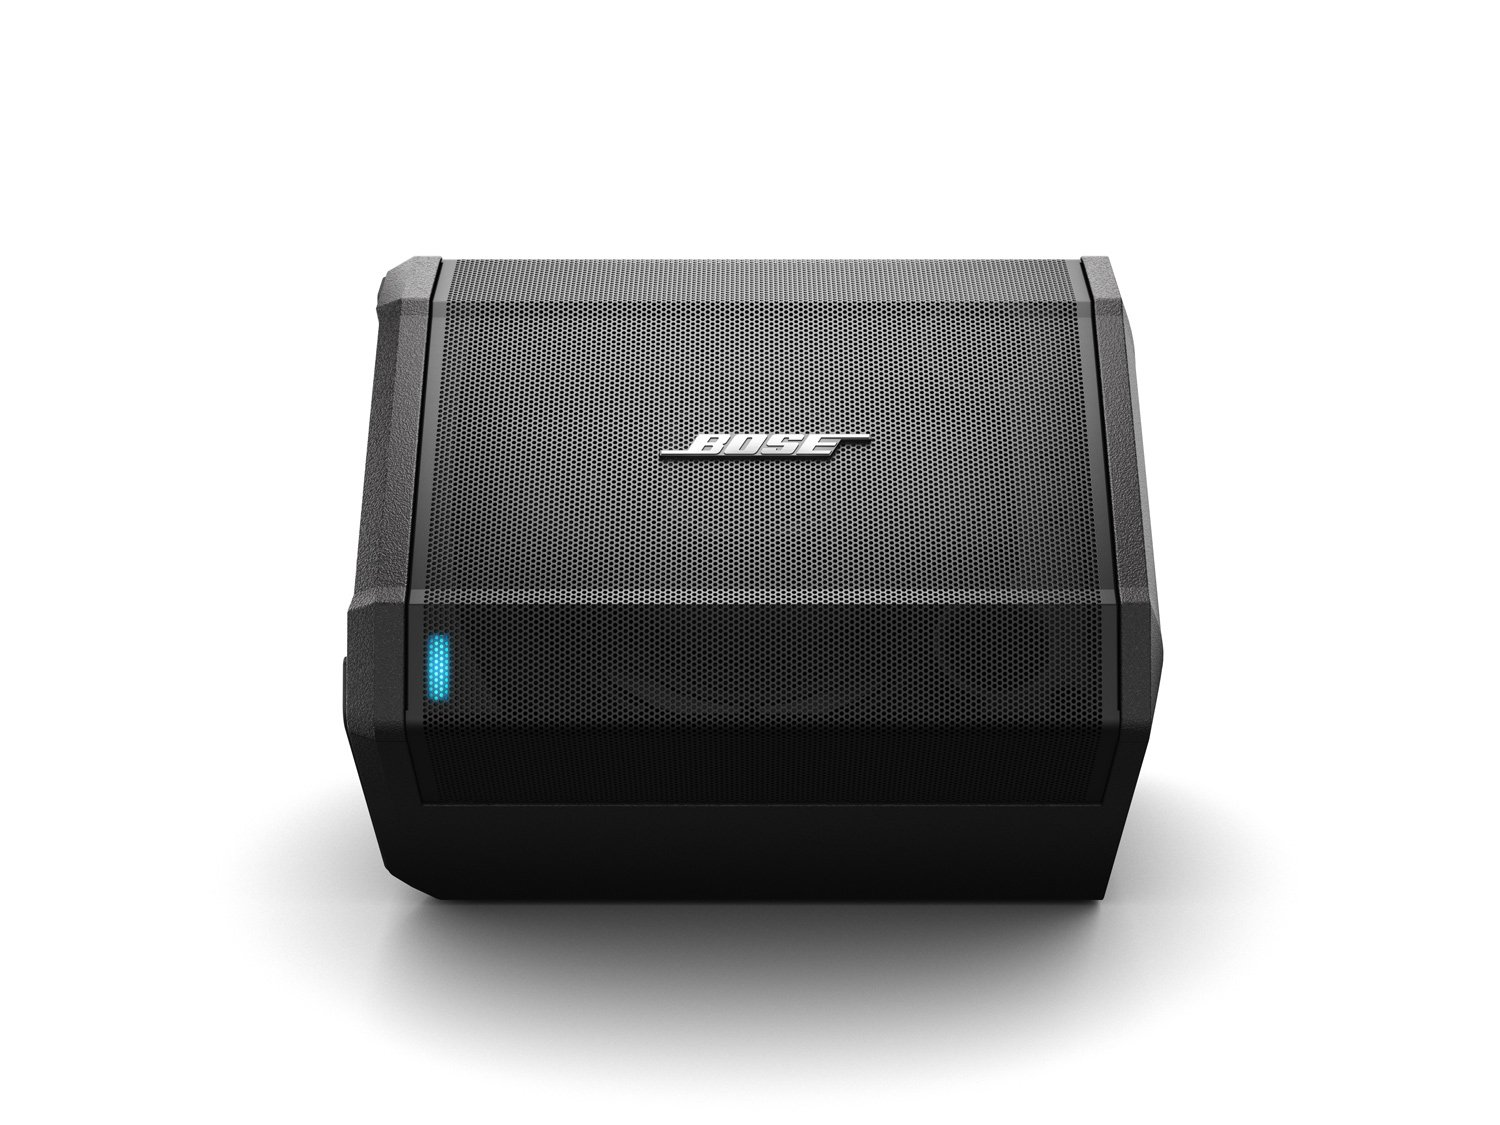 Bose S1 Pro Bluetooth Speaker System w/ Battery, Black - 787930-1120 3 Big sound from a rugged speaker that goes where you do Wireless Bluetooth pairing and inputs for a microphone or musical instrument such as a keyboard or guitar Built-in sensors and multiple aiming positions for optimal sound in any nearly position